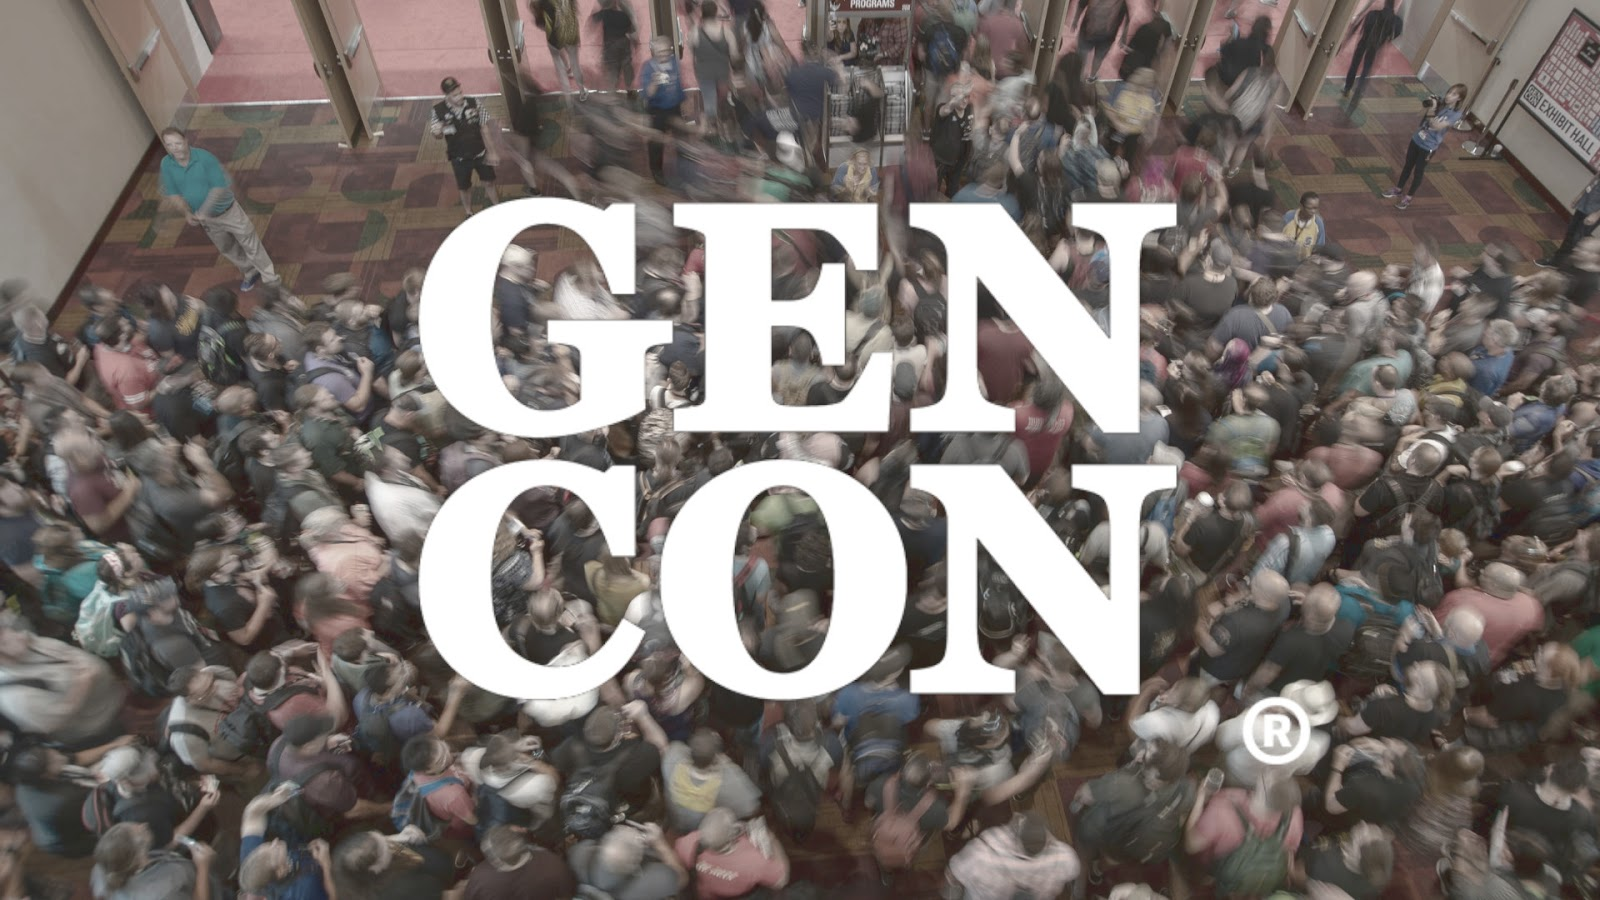 News Collider - Gen Con Early Attendance Figures